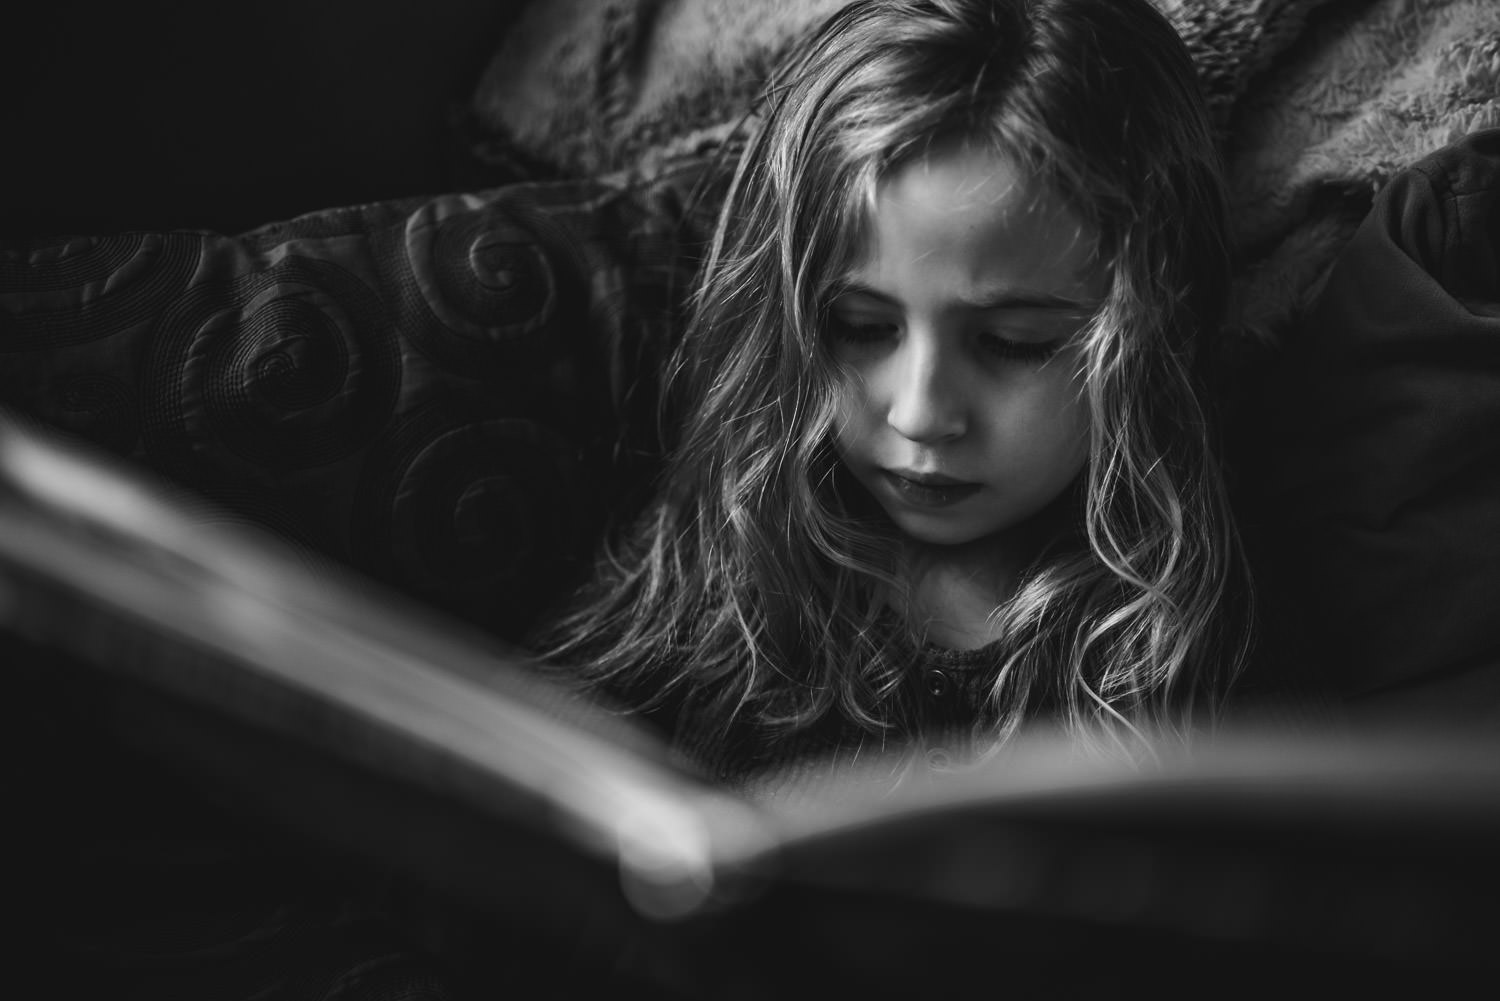 A little girl reads a book.